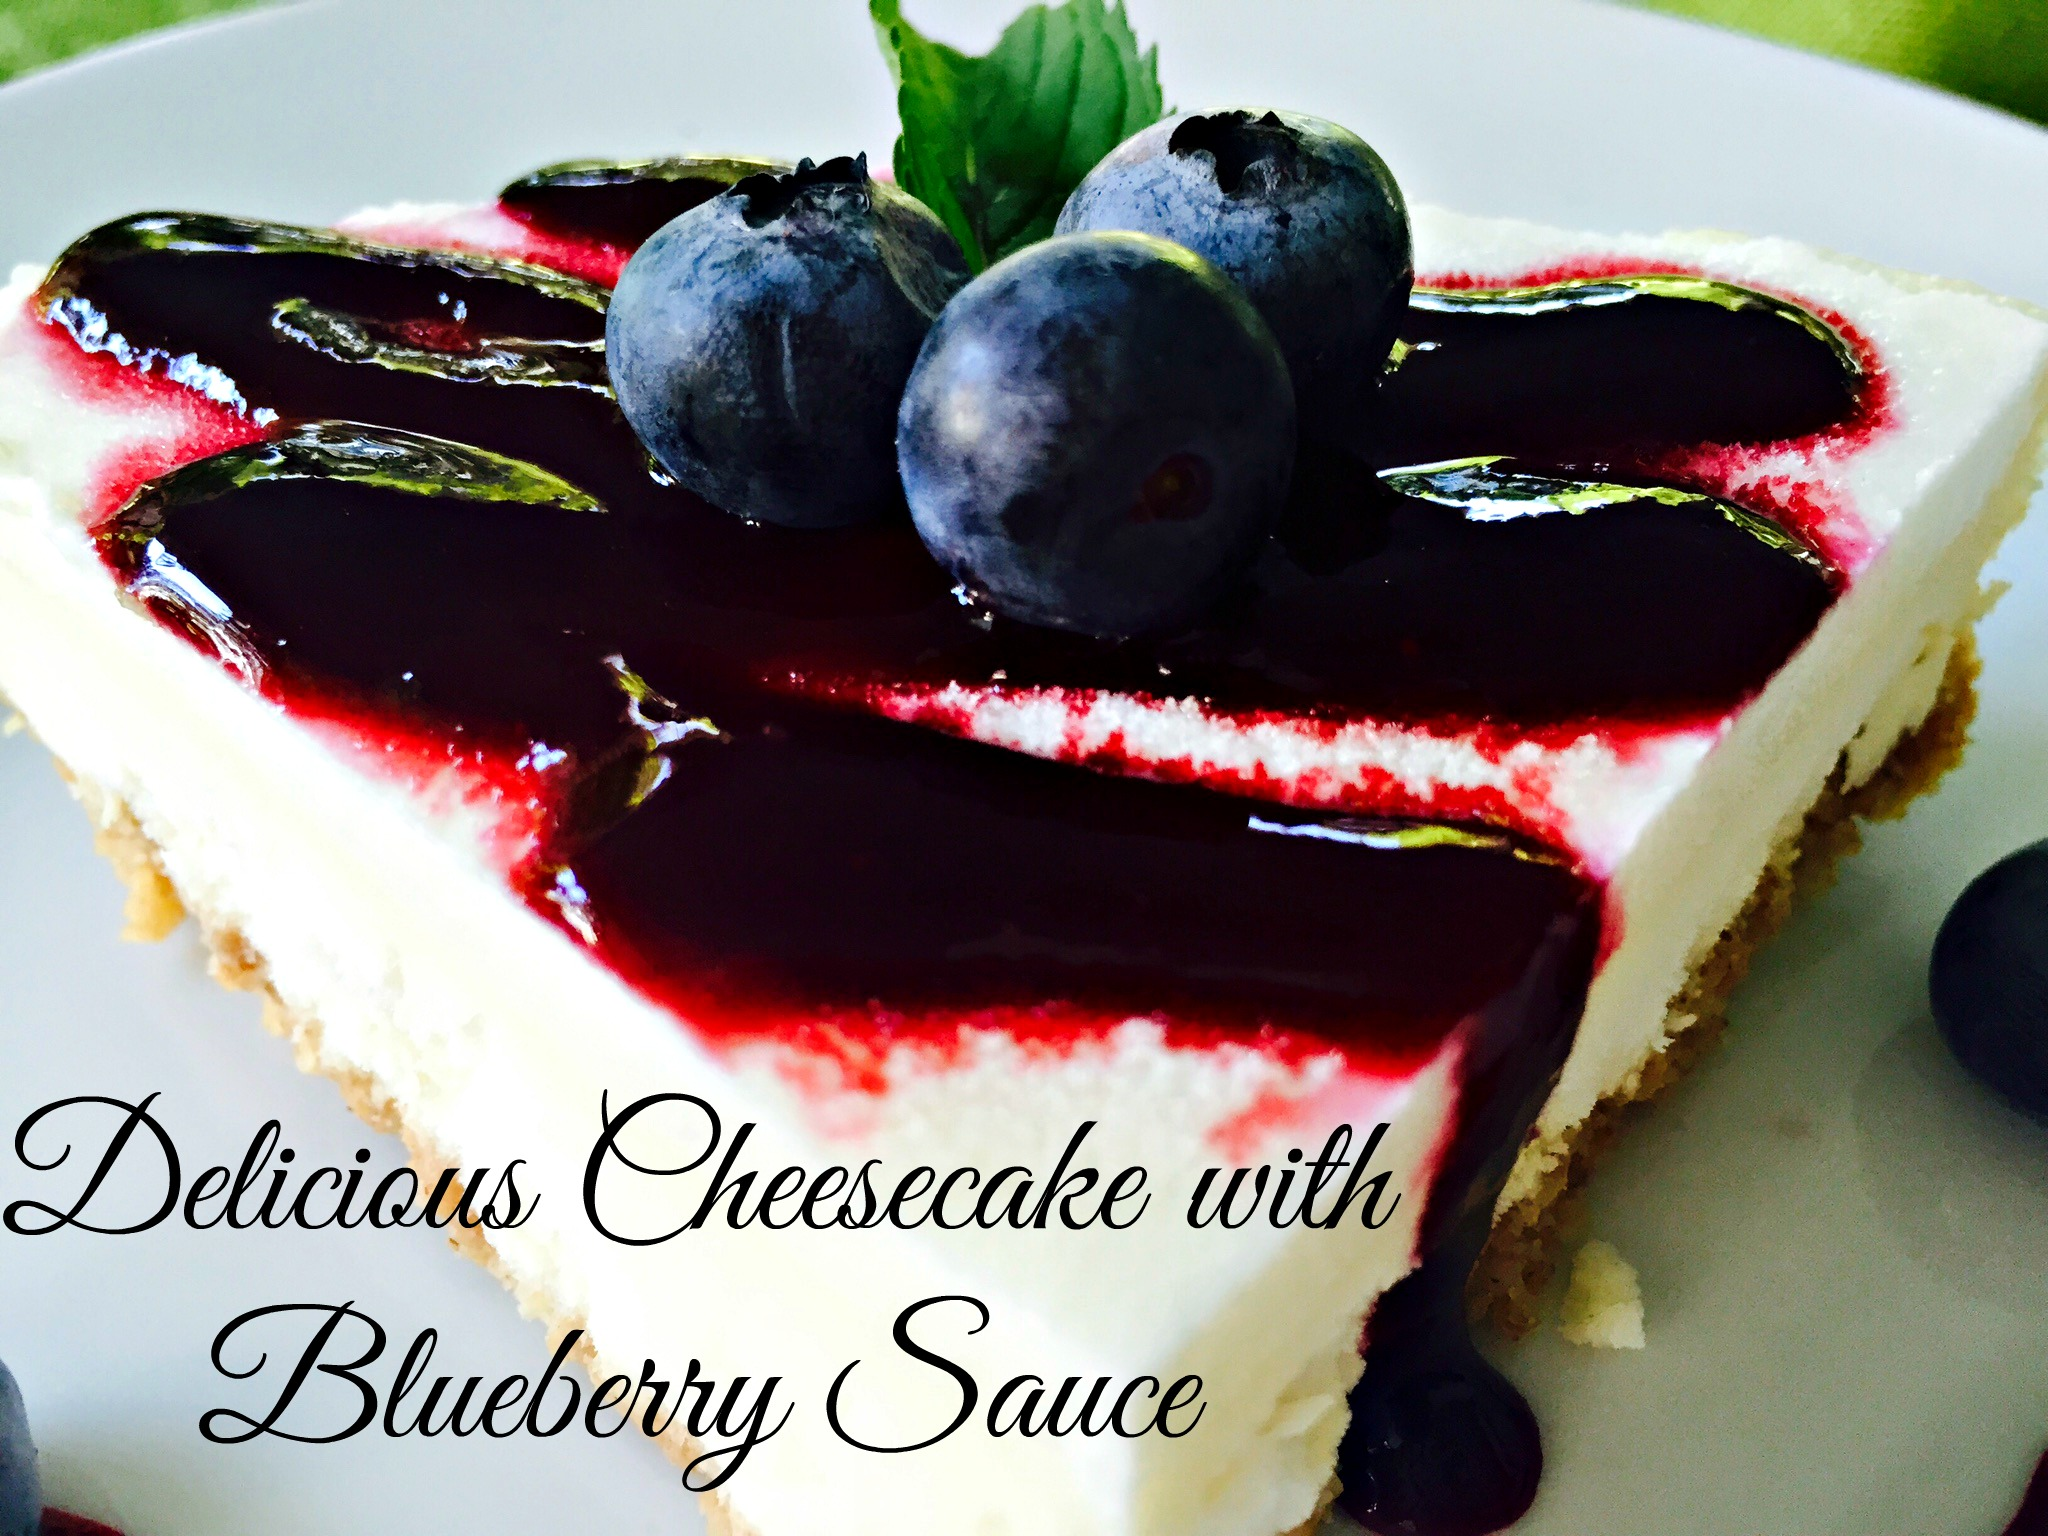 Delicious Cheesecake with Blueberry Sauce 3